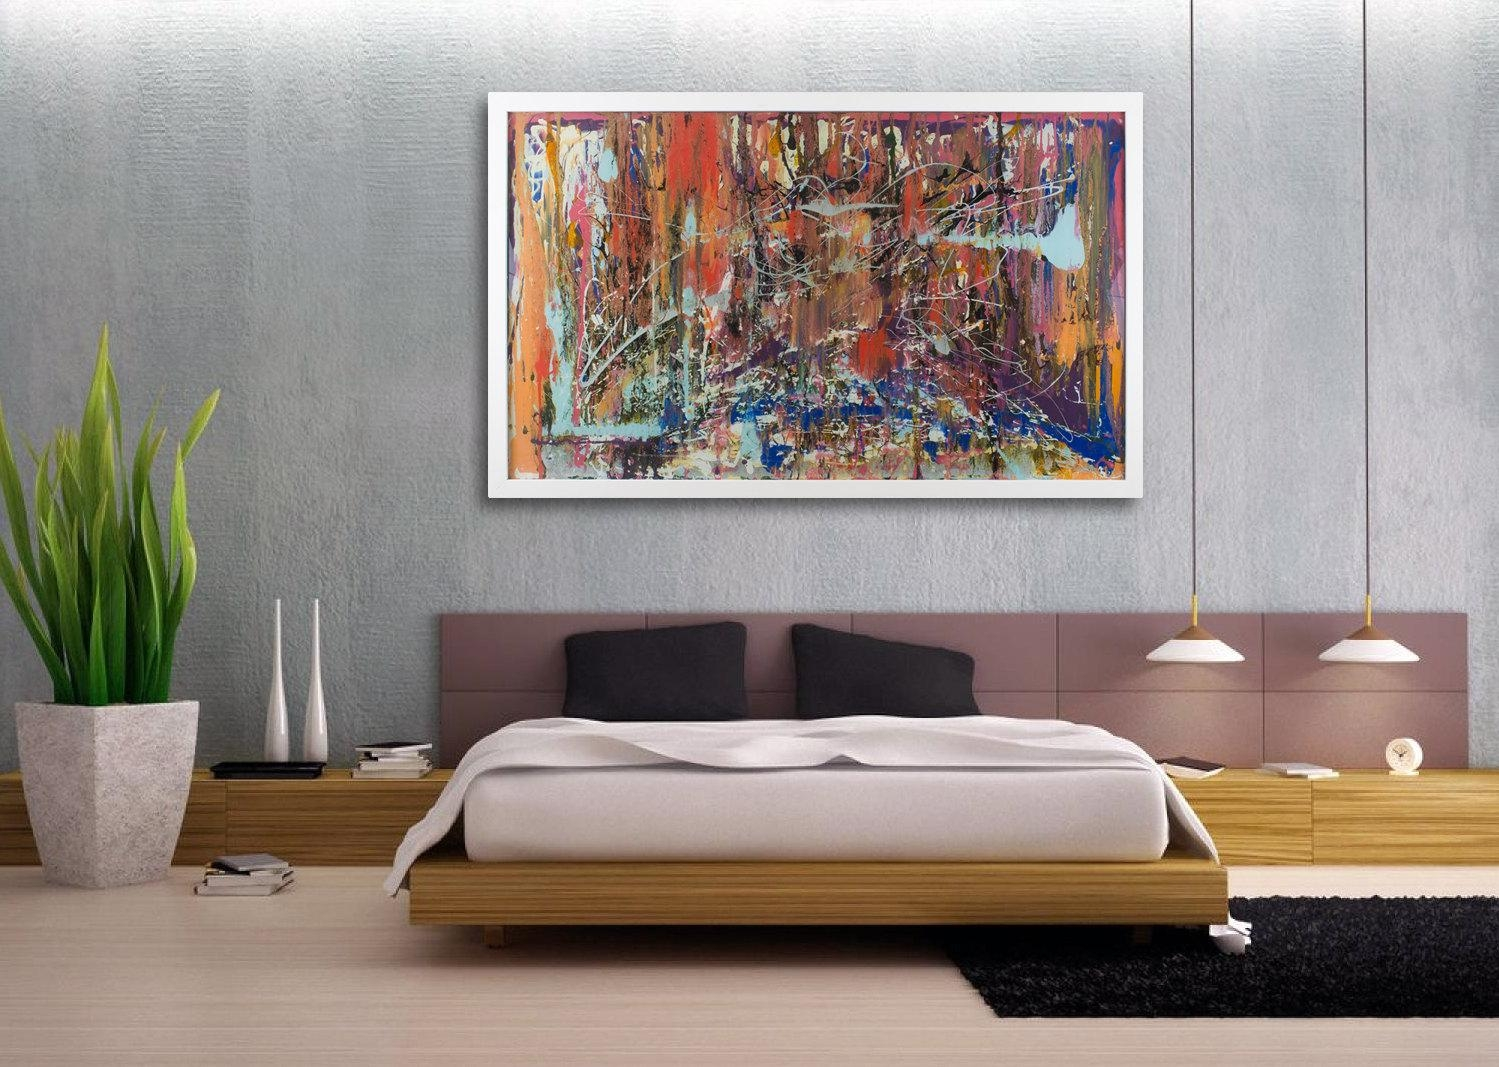 Extra Large Wall Art | Roselawnlutheran Within Modern Wall Art Uk (Image 13 of 20)